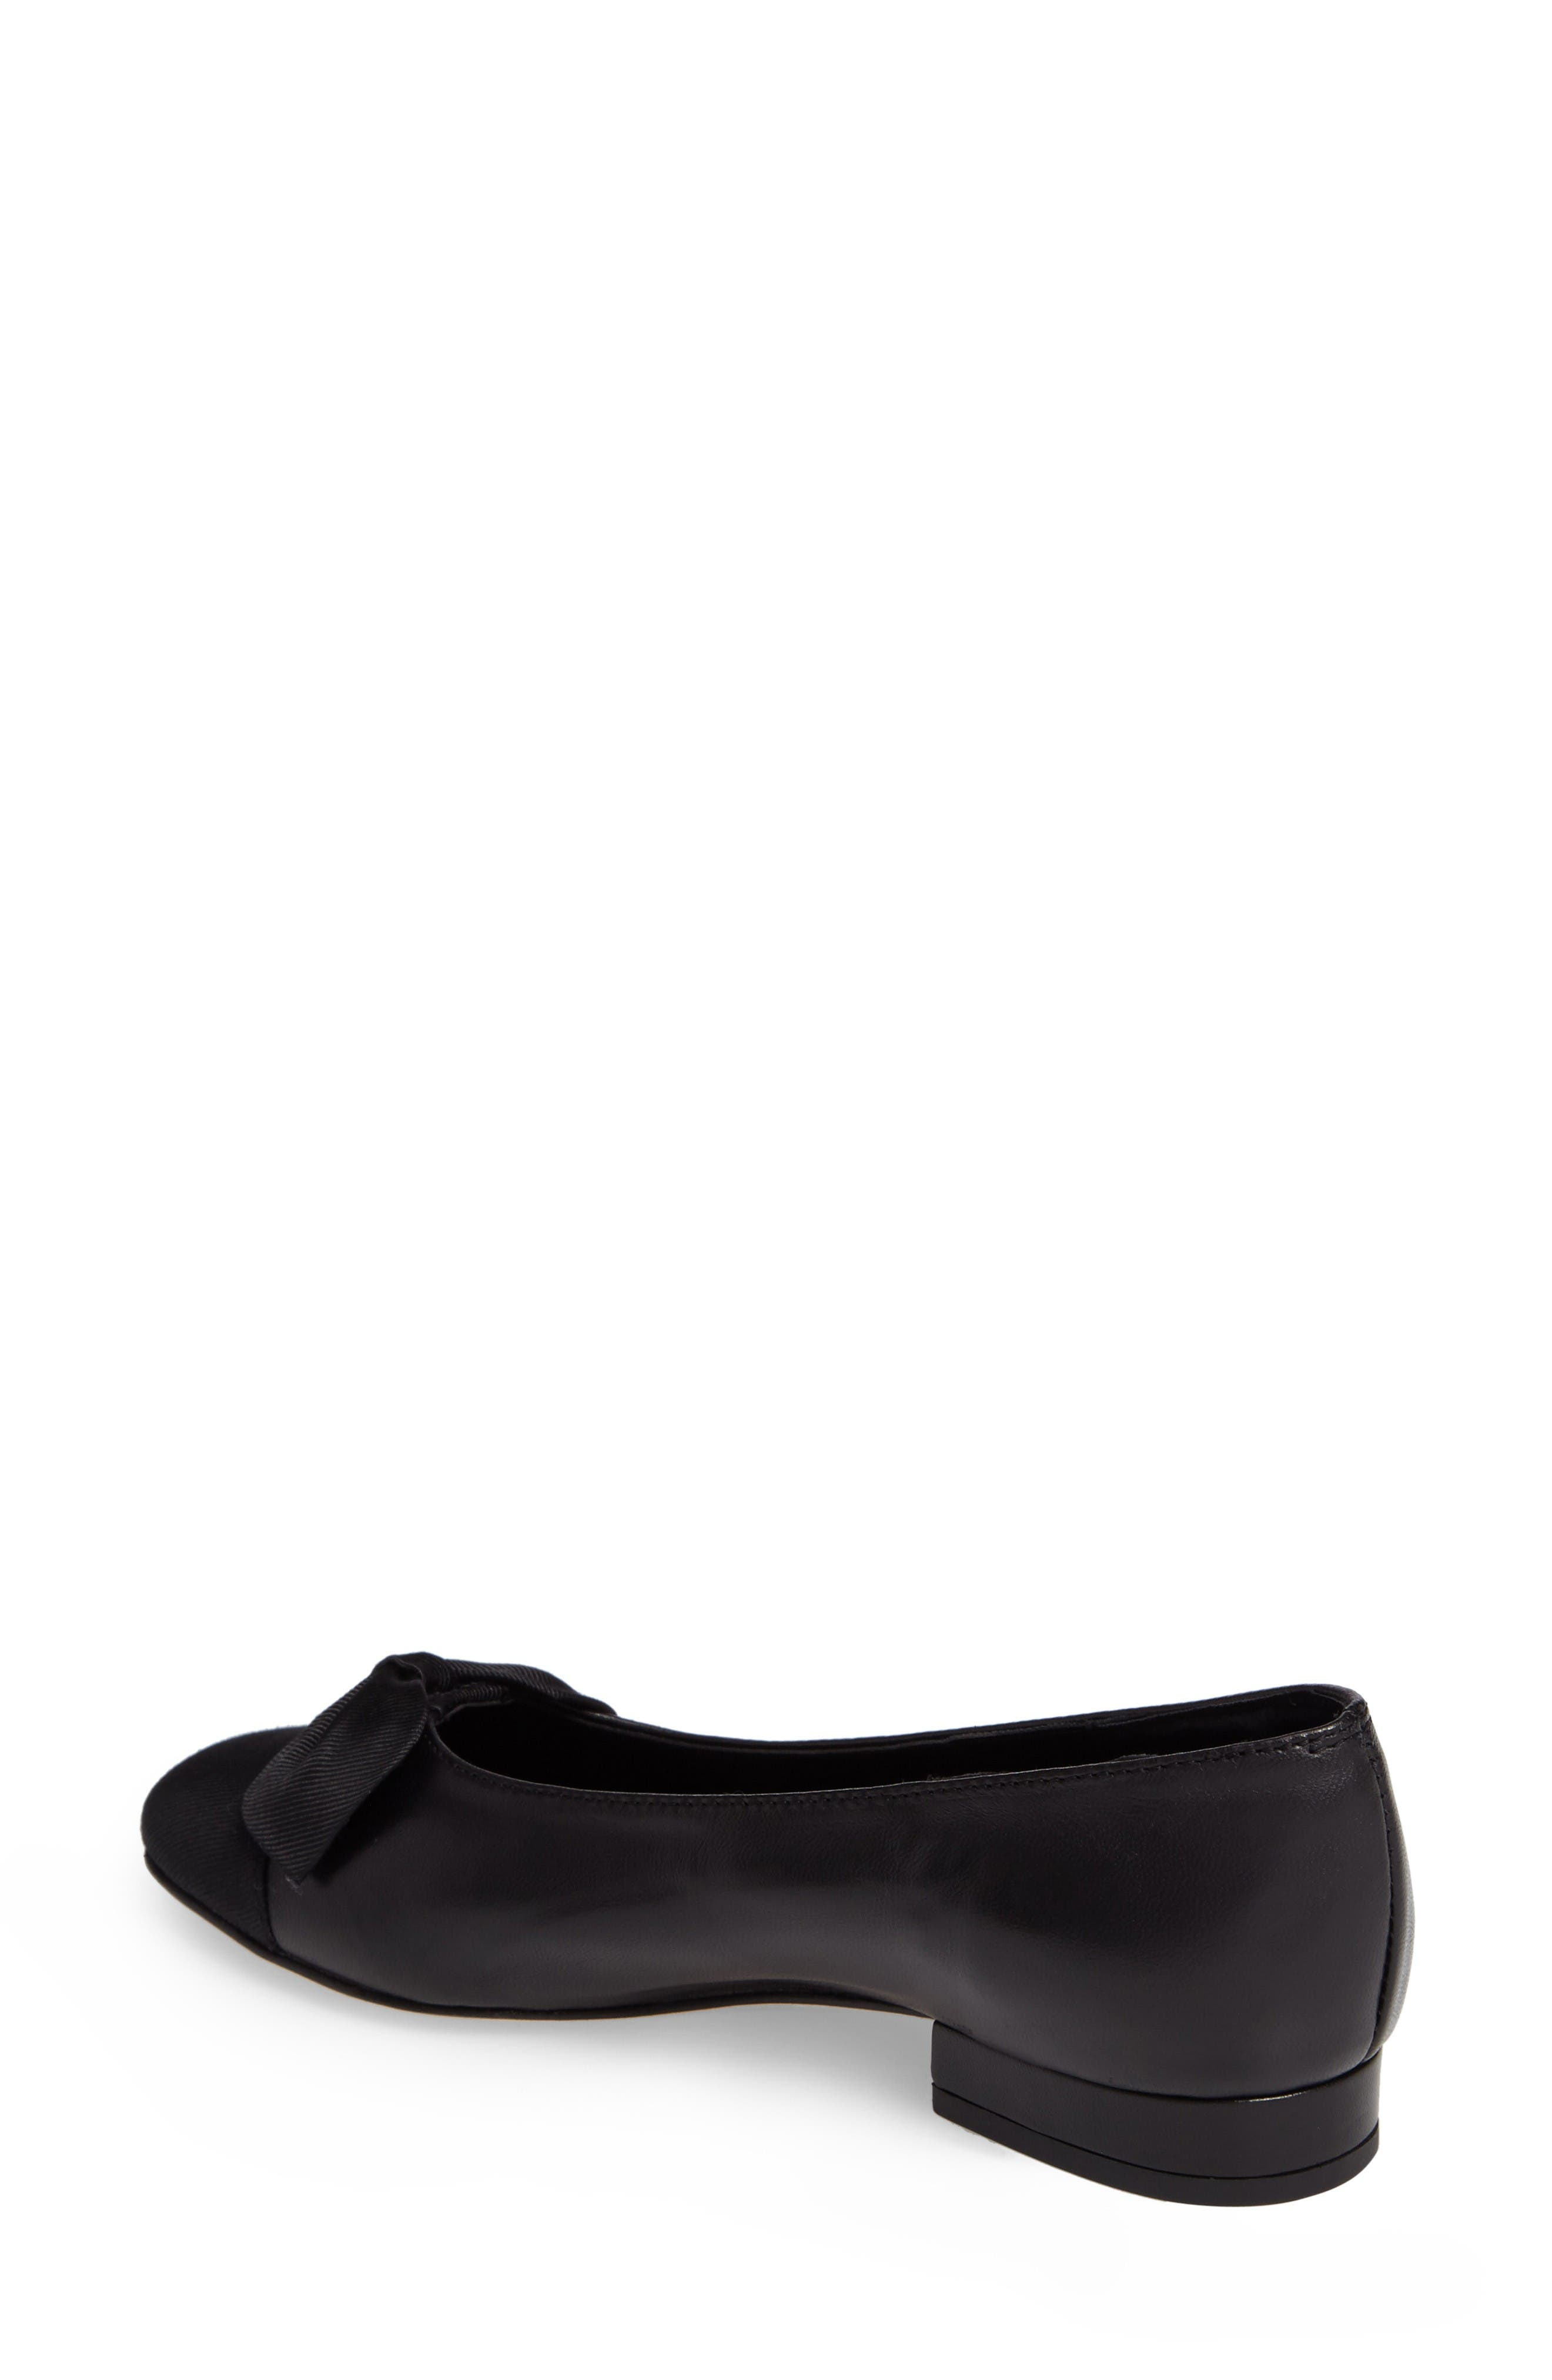 Alternate Image 2  - VANELi Favor Bow Flat (Women)